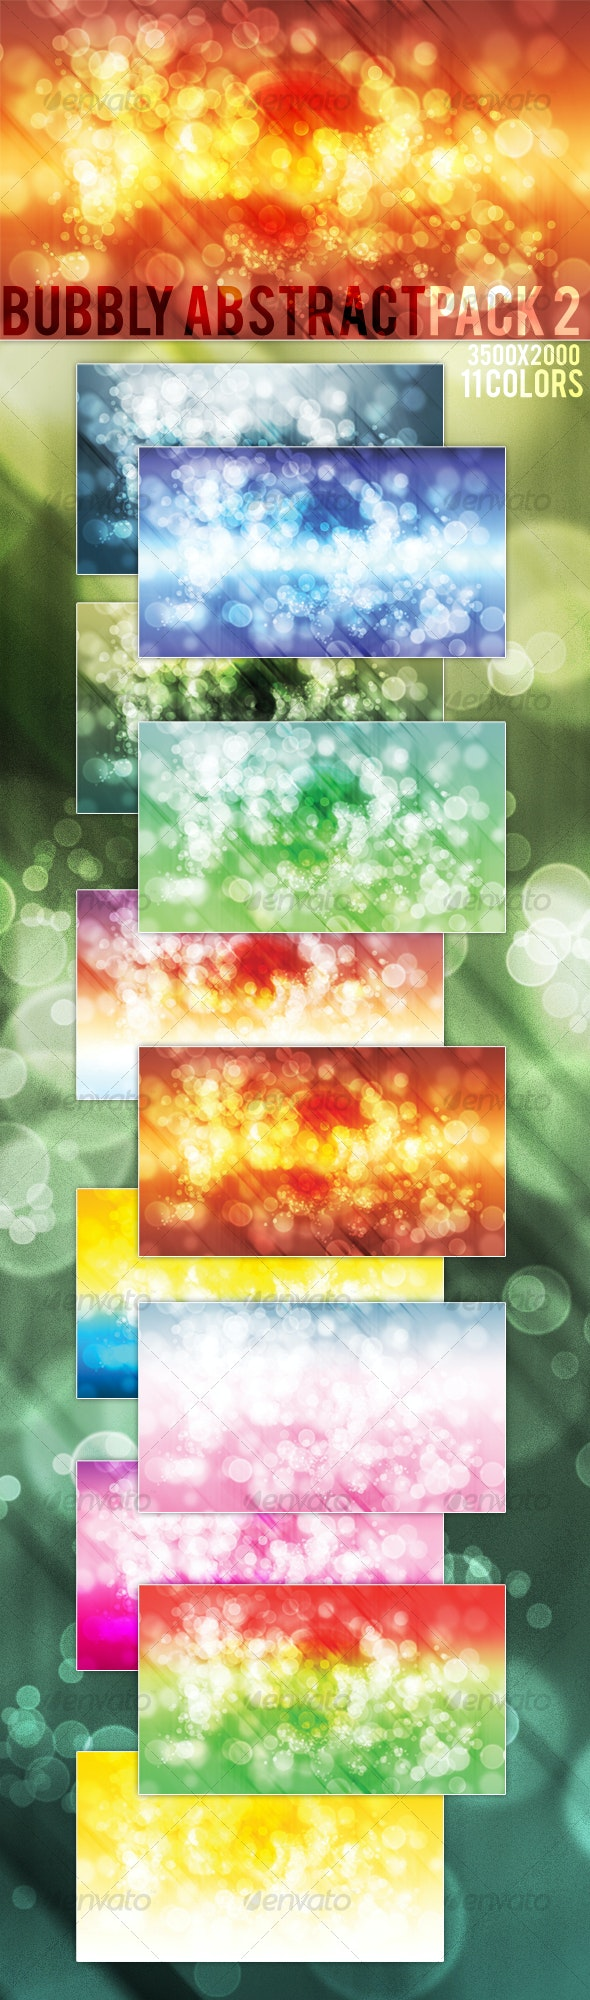 Bubbly Abstract Background Pack 2 - Backgrounds Graphics